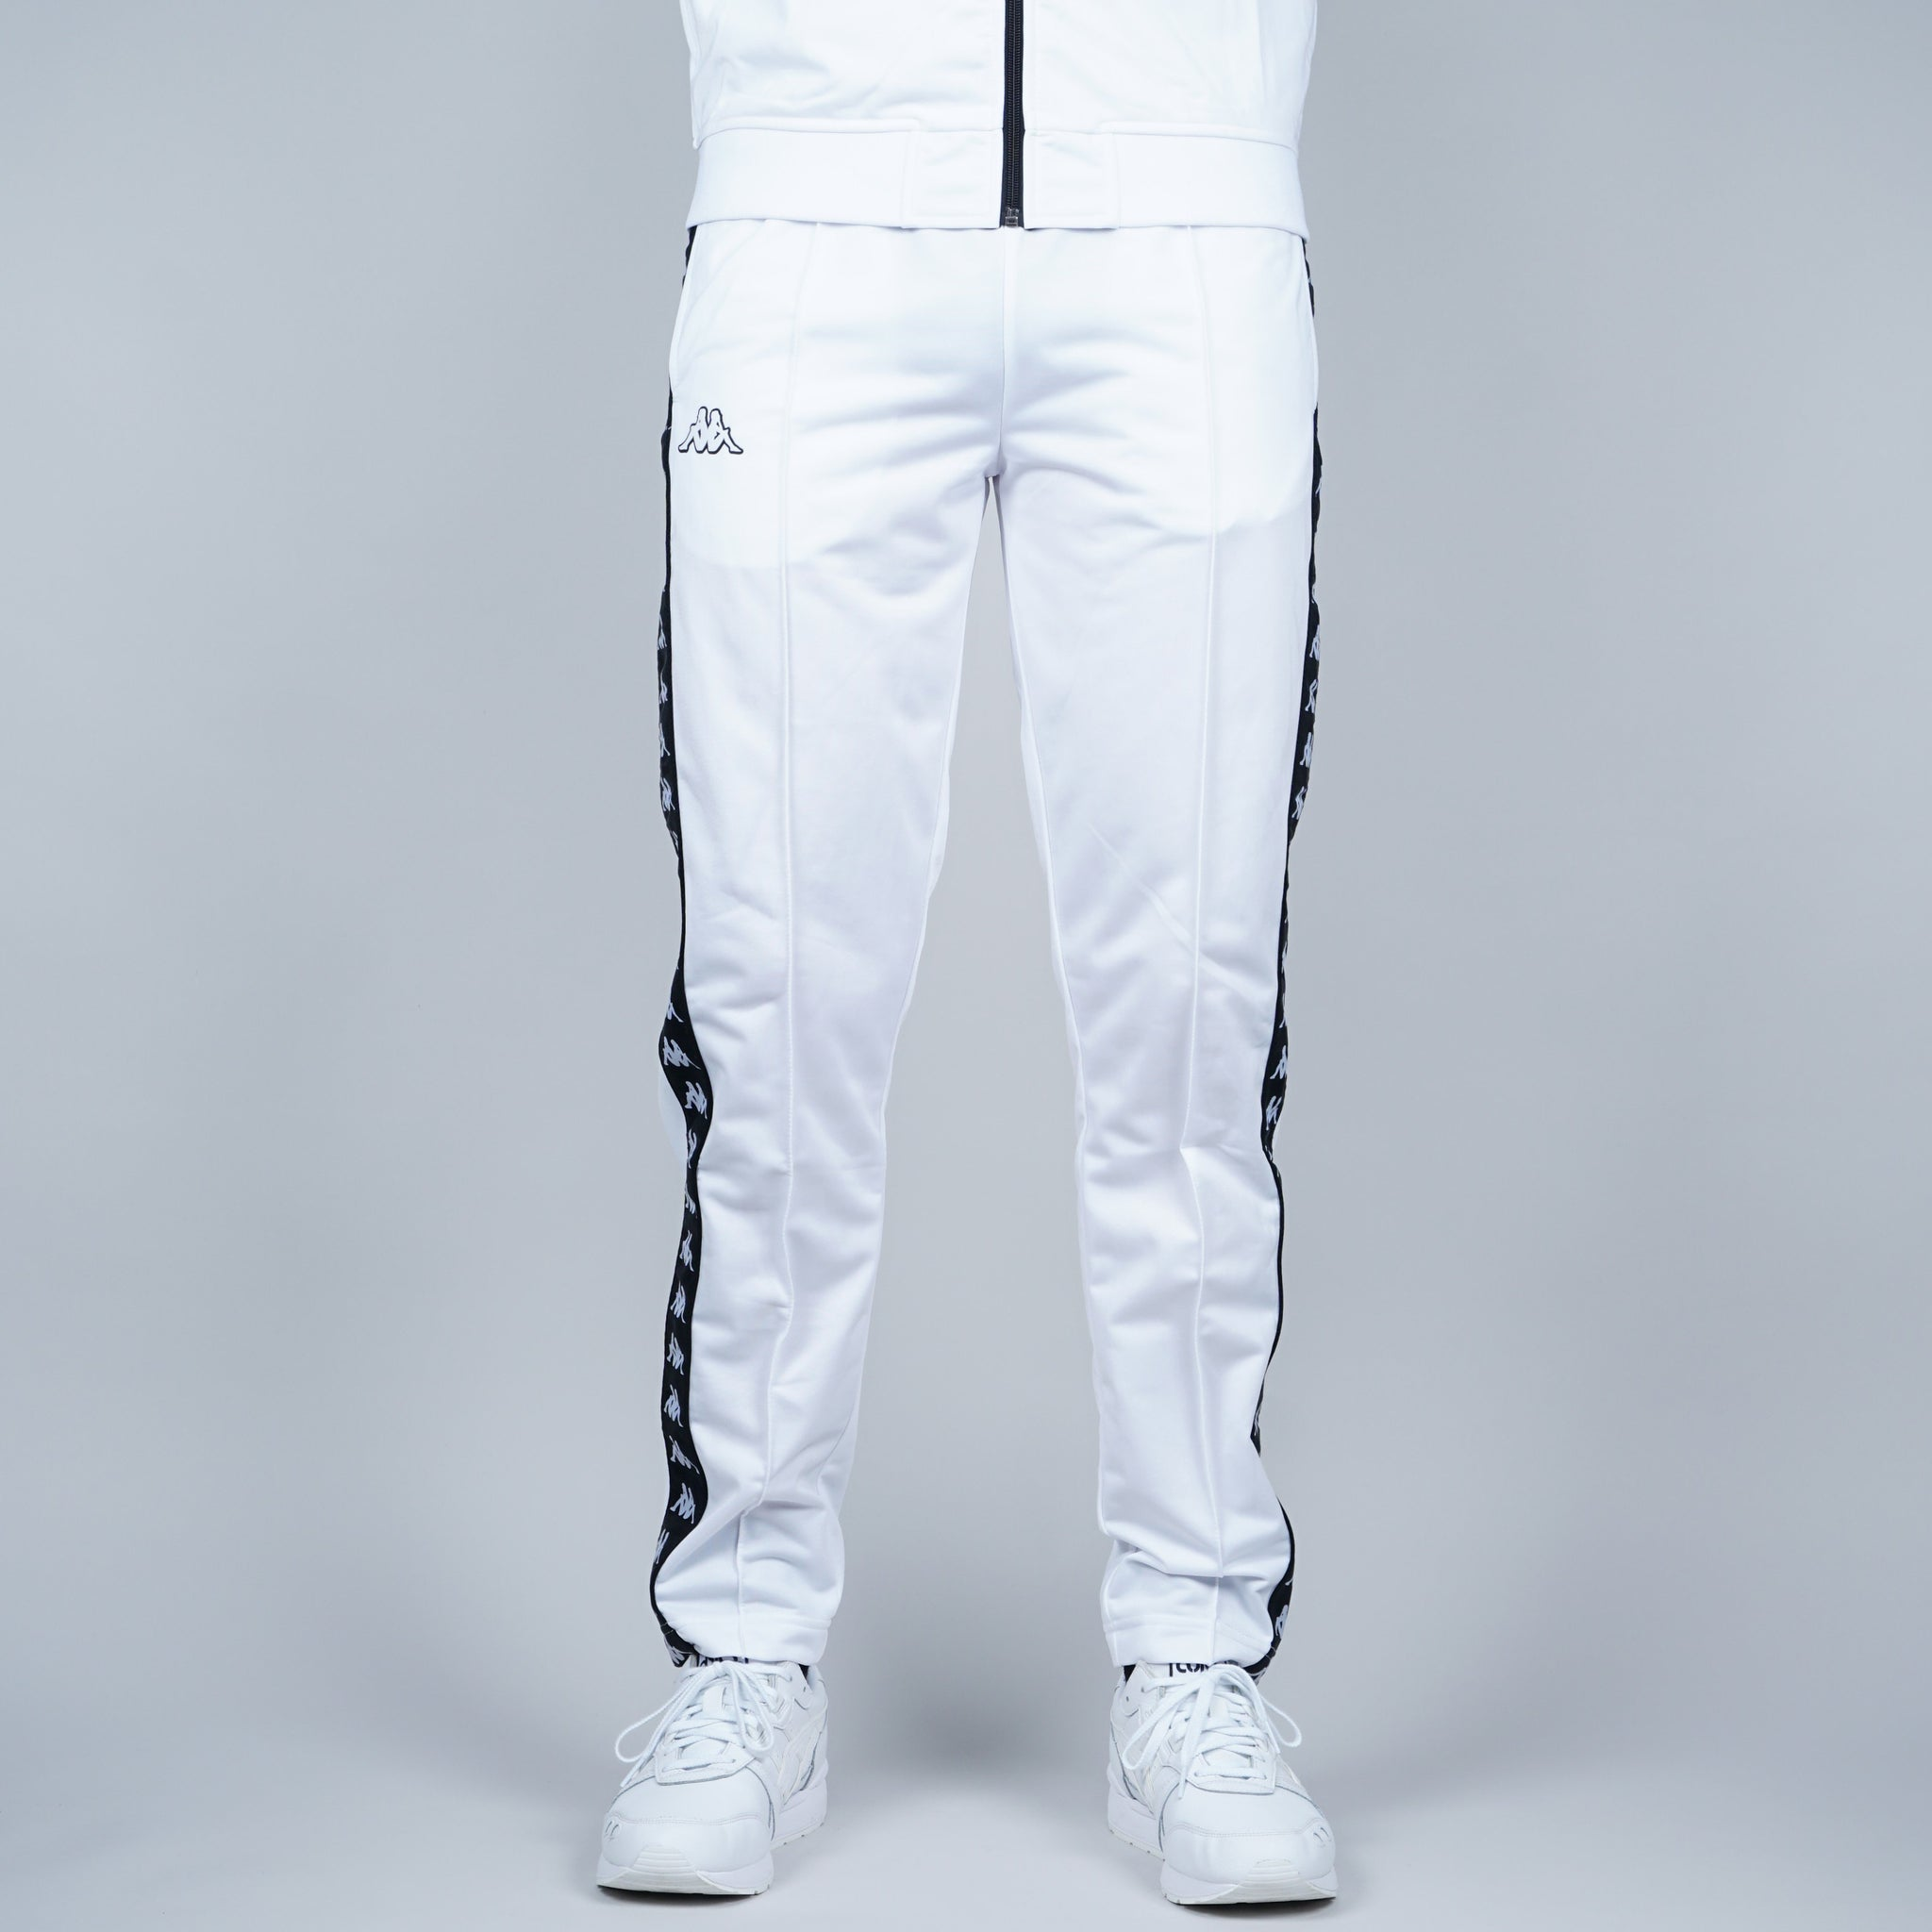 Kappa Astoria Snap Trouser - White / black